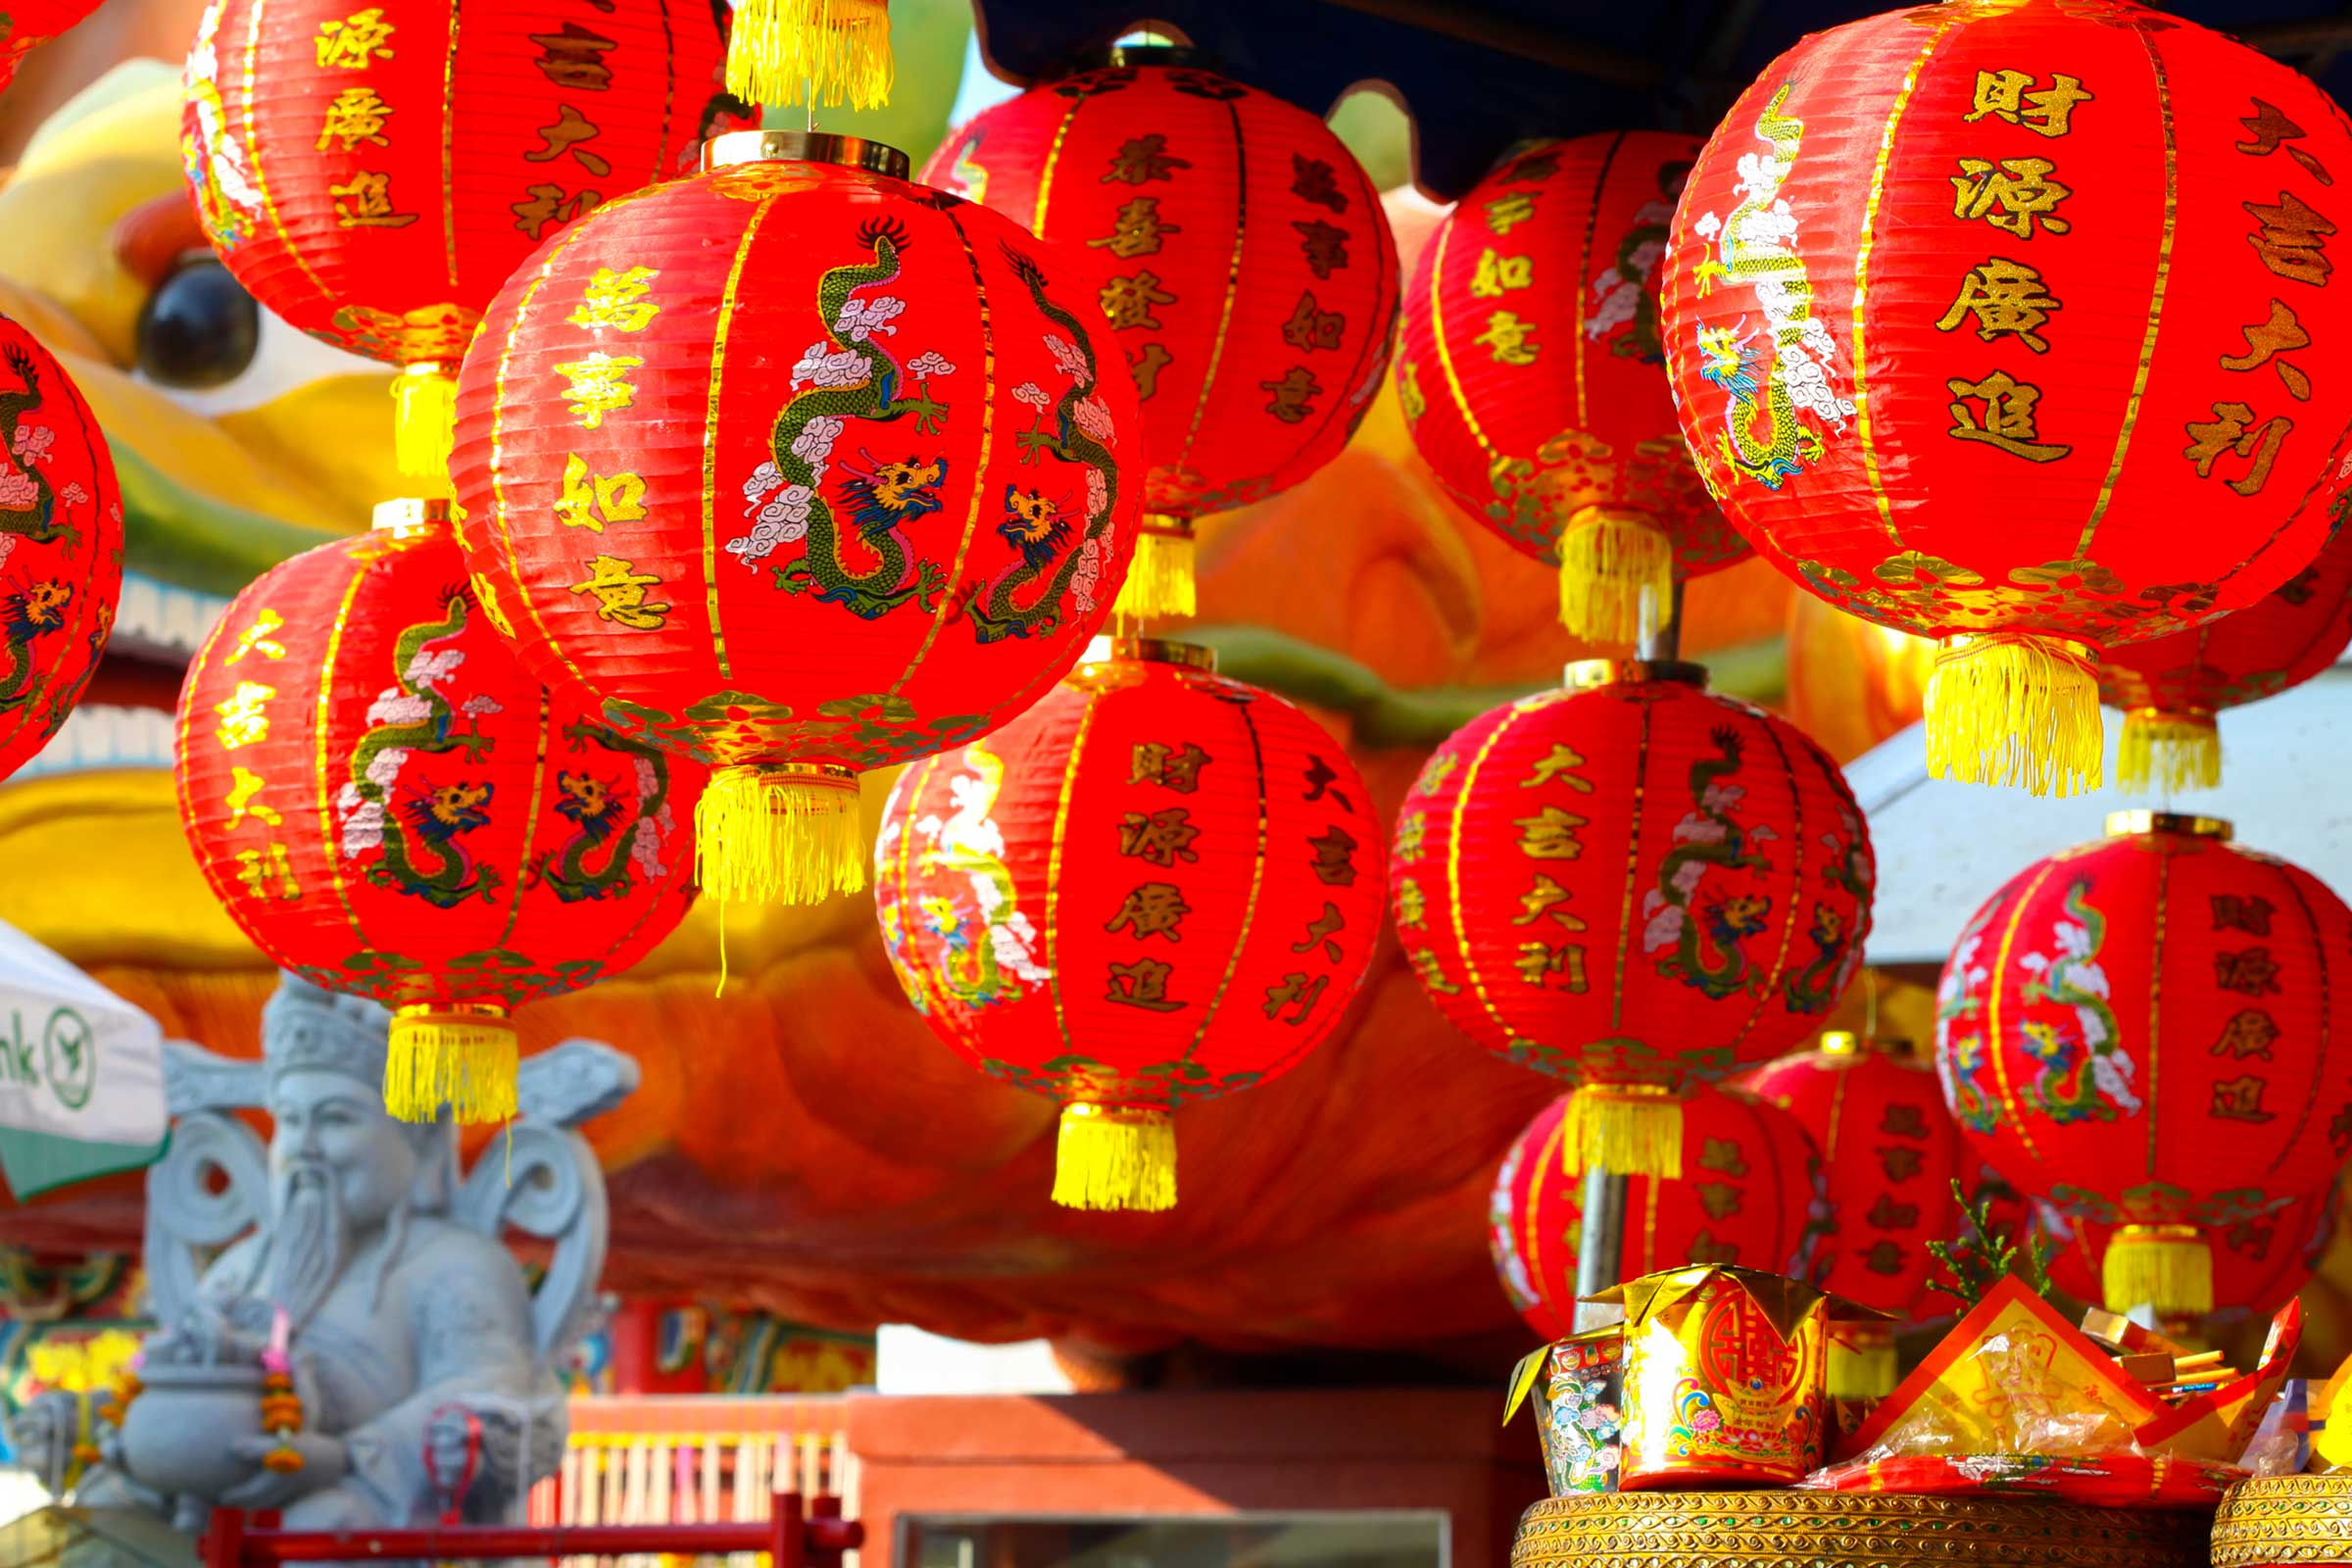 February 12th starts the Chinese New Year